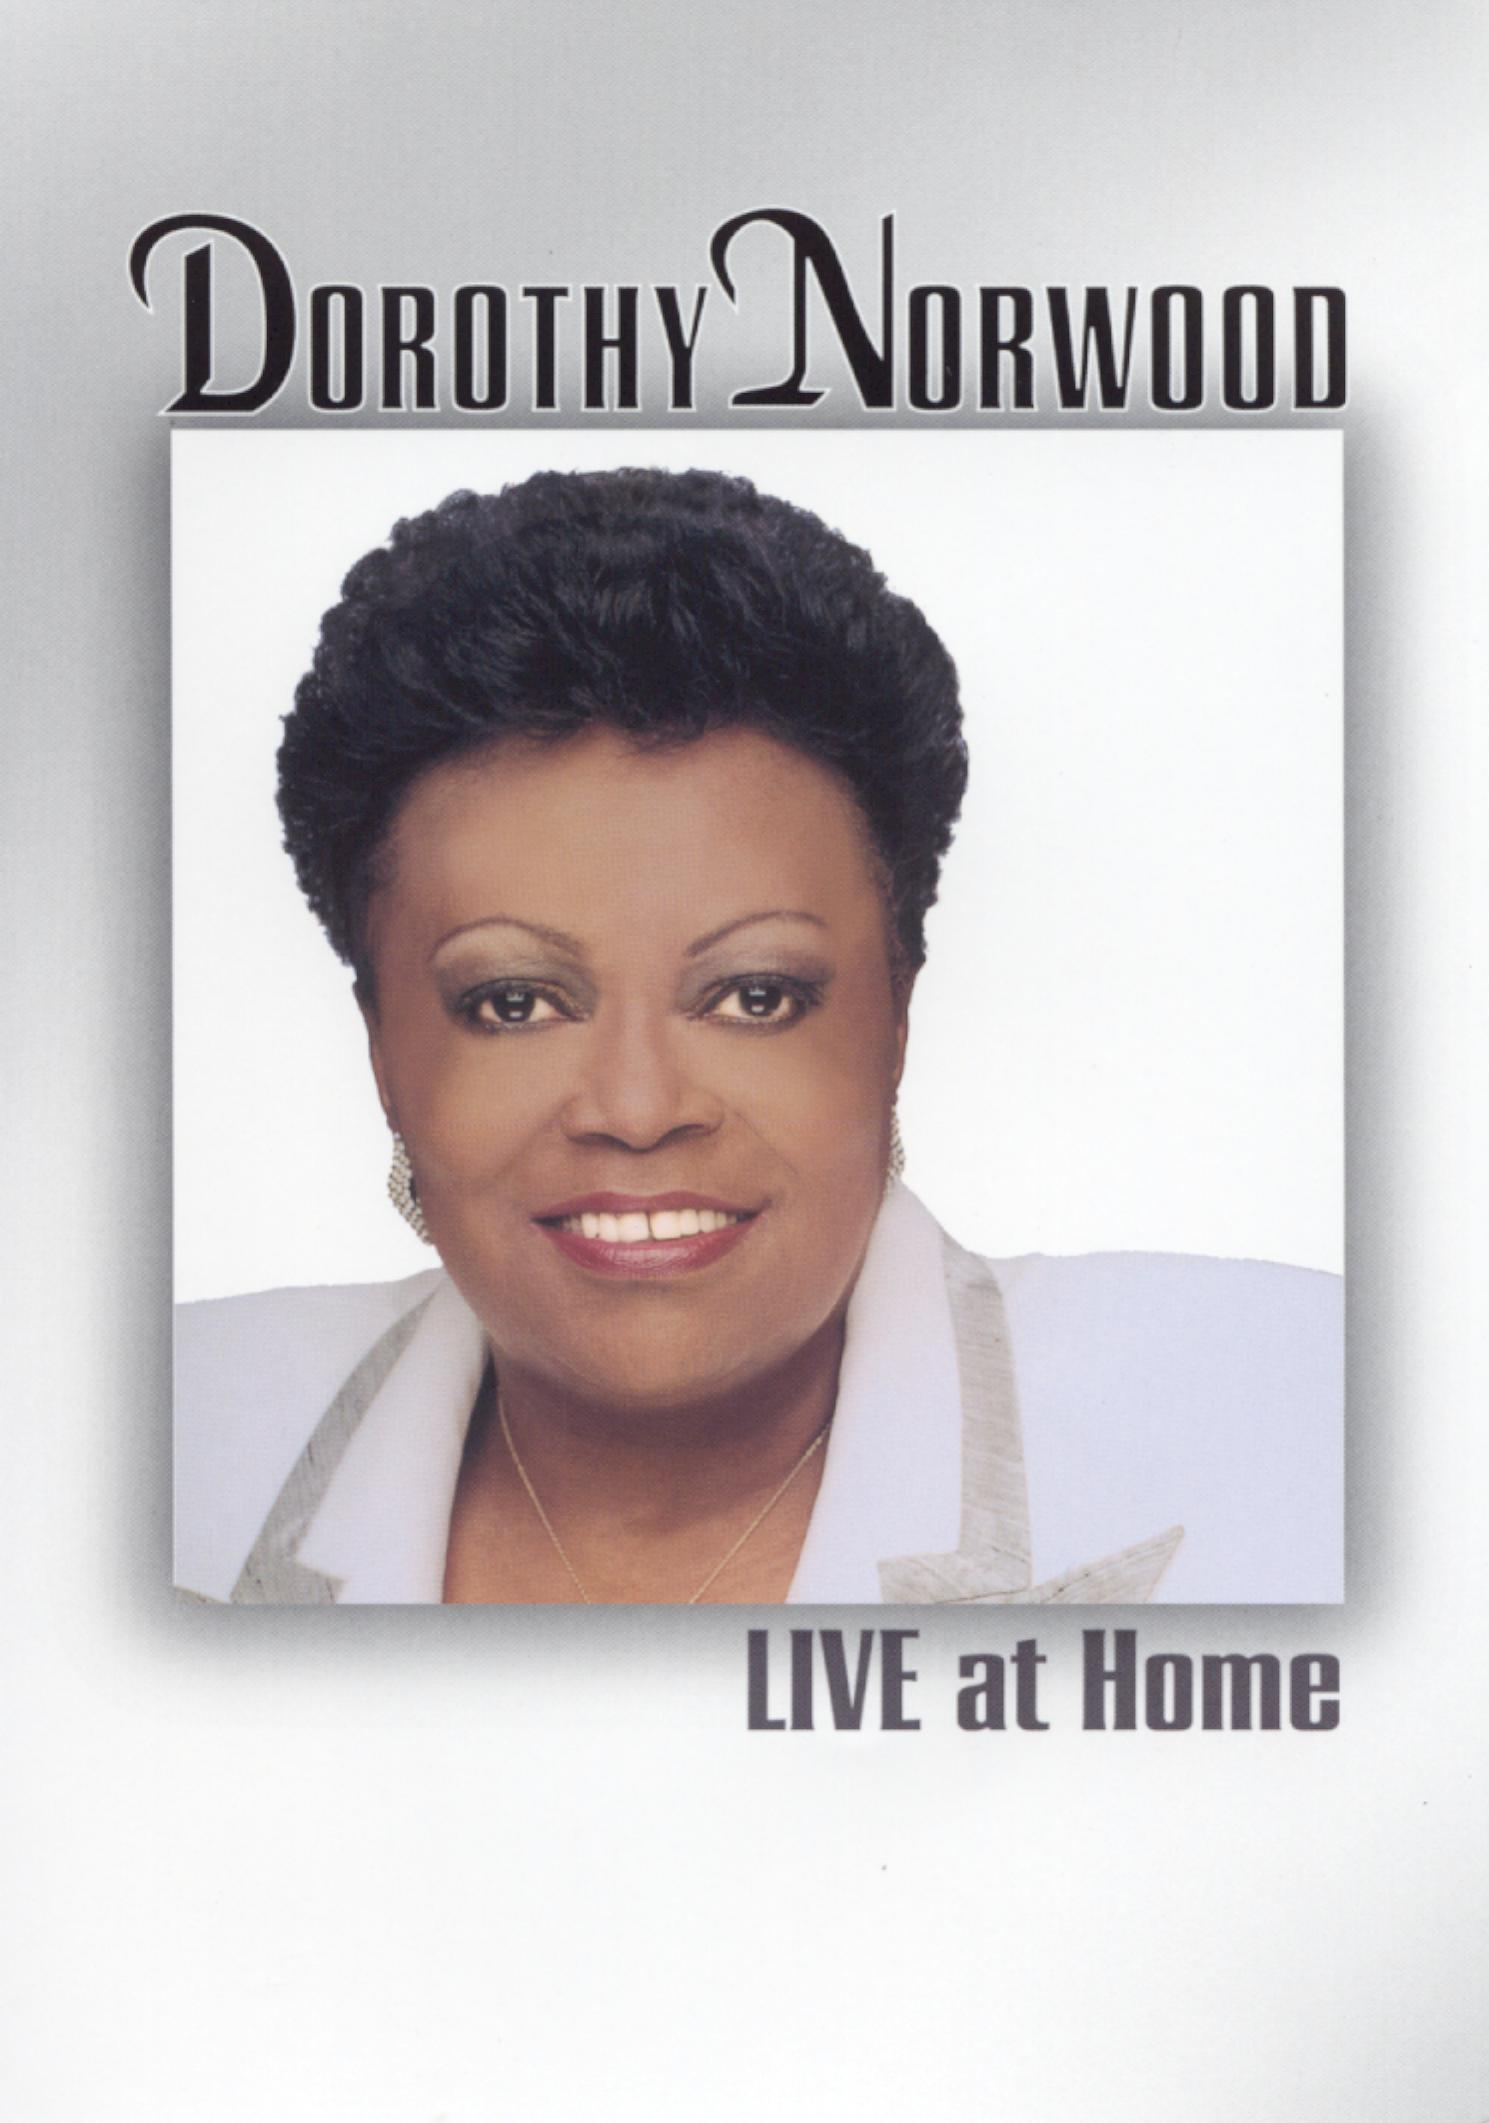 Dorothy Norwood: Live at Home